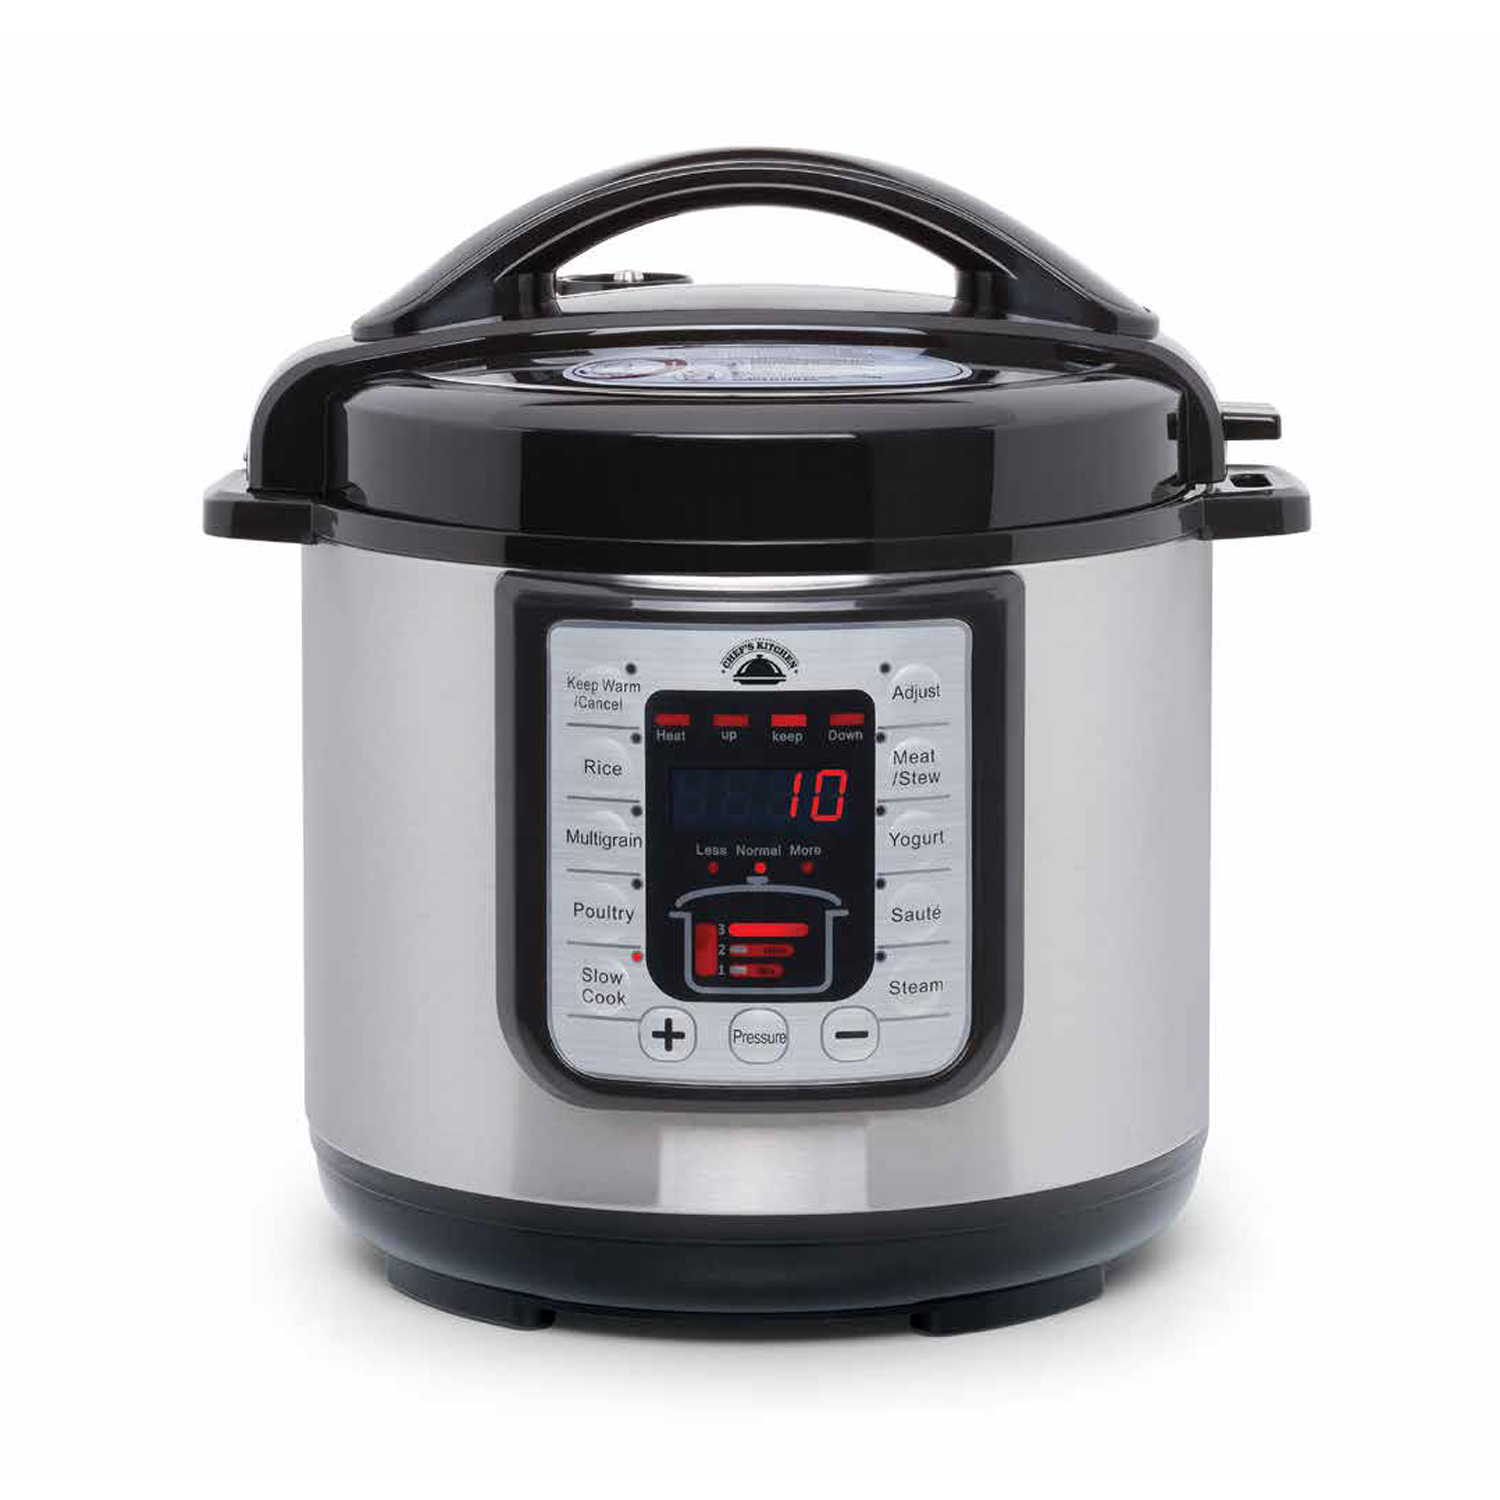 Chef's Kitchen-Best Pressure Cooker, 6 Quart Pot, Pressure Lock Lid and Handle, Digital Control Panel w/ One-Touch Cooking and Manaul Mode